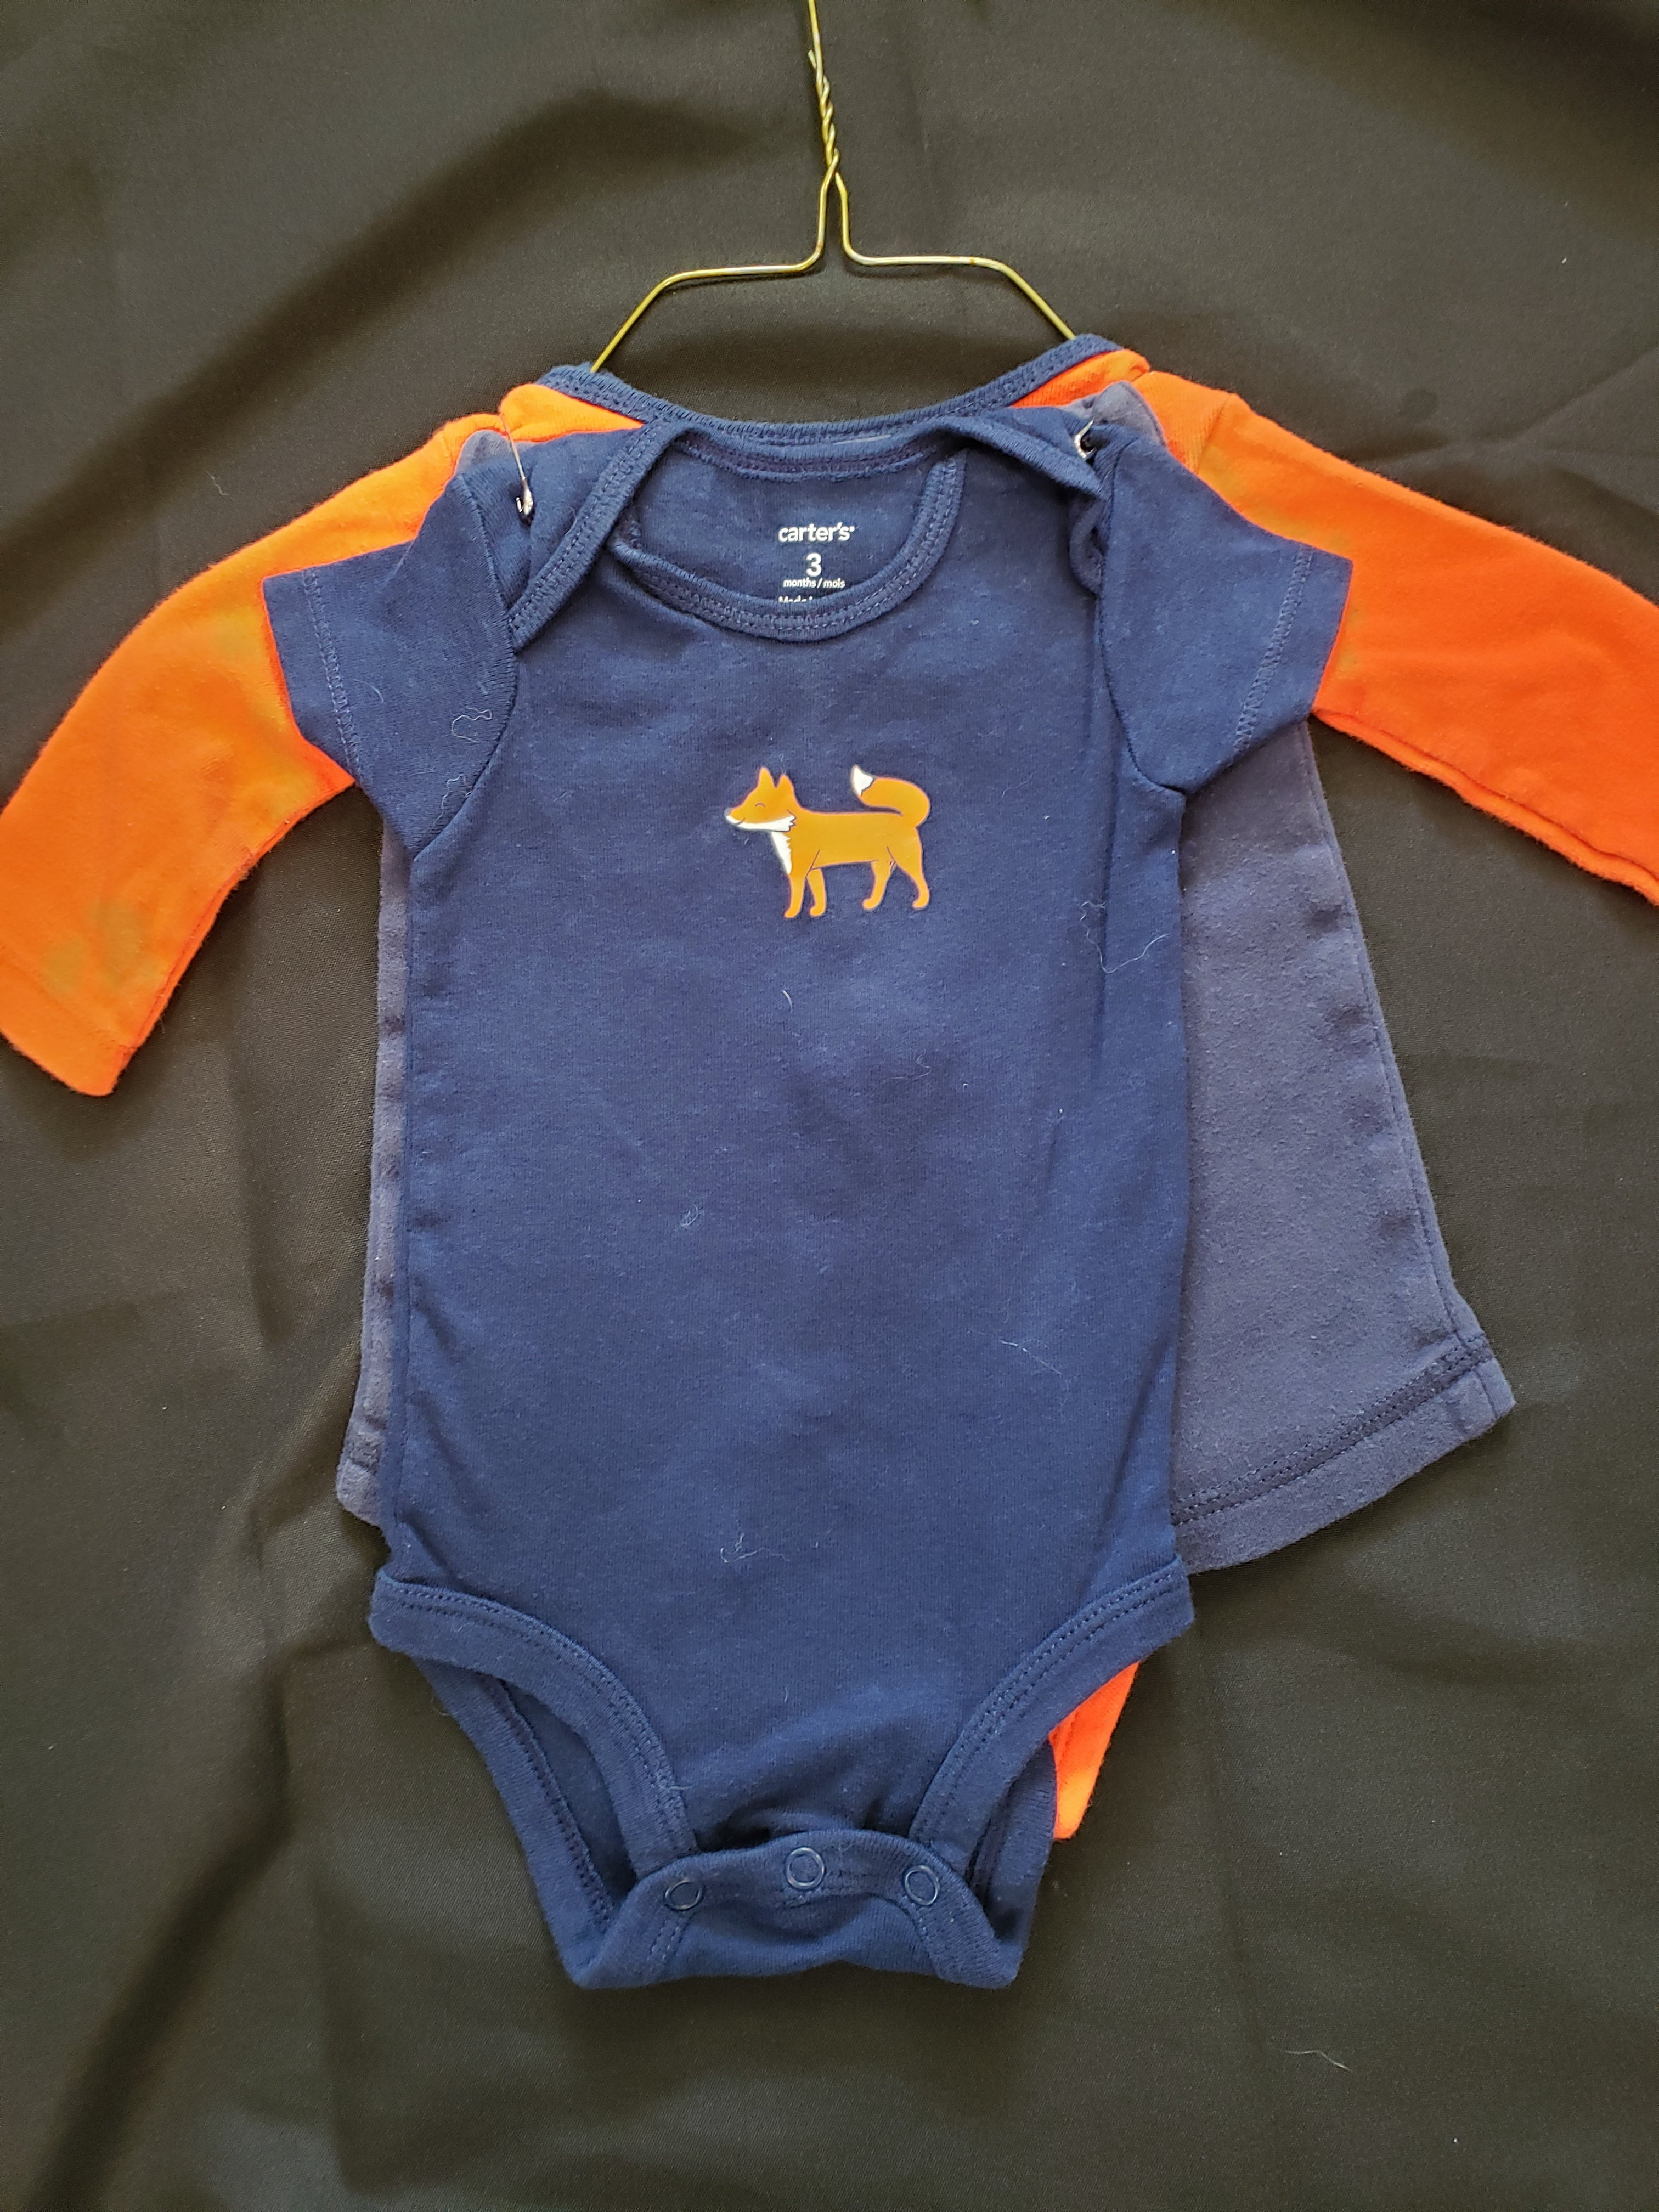 Carter's size 3mo 3 piece outfit. Orange onesie, blue onesie with a fox and blue pants